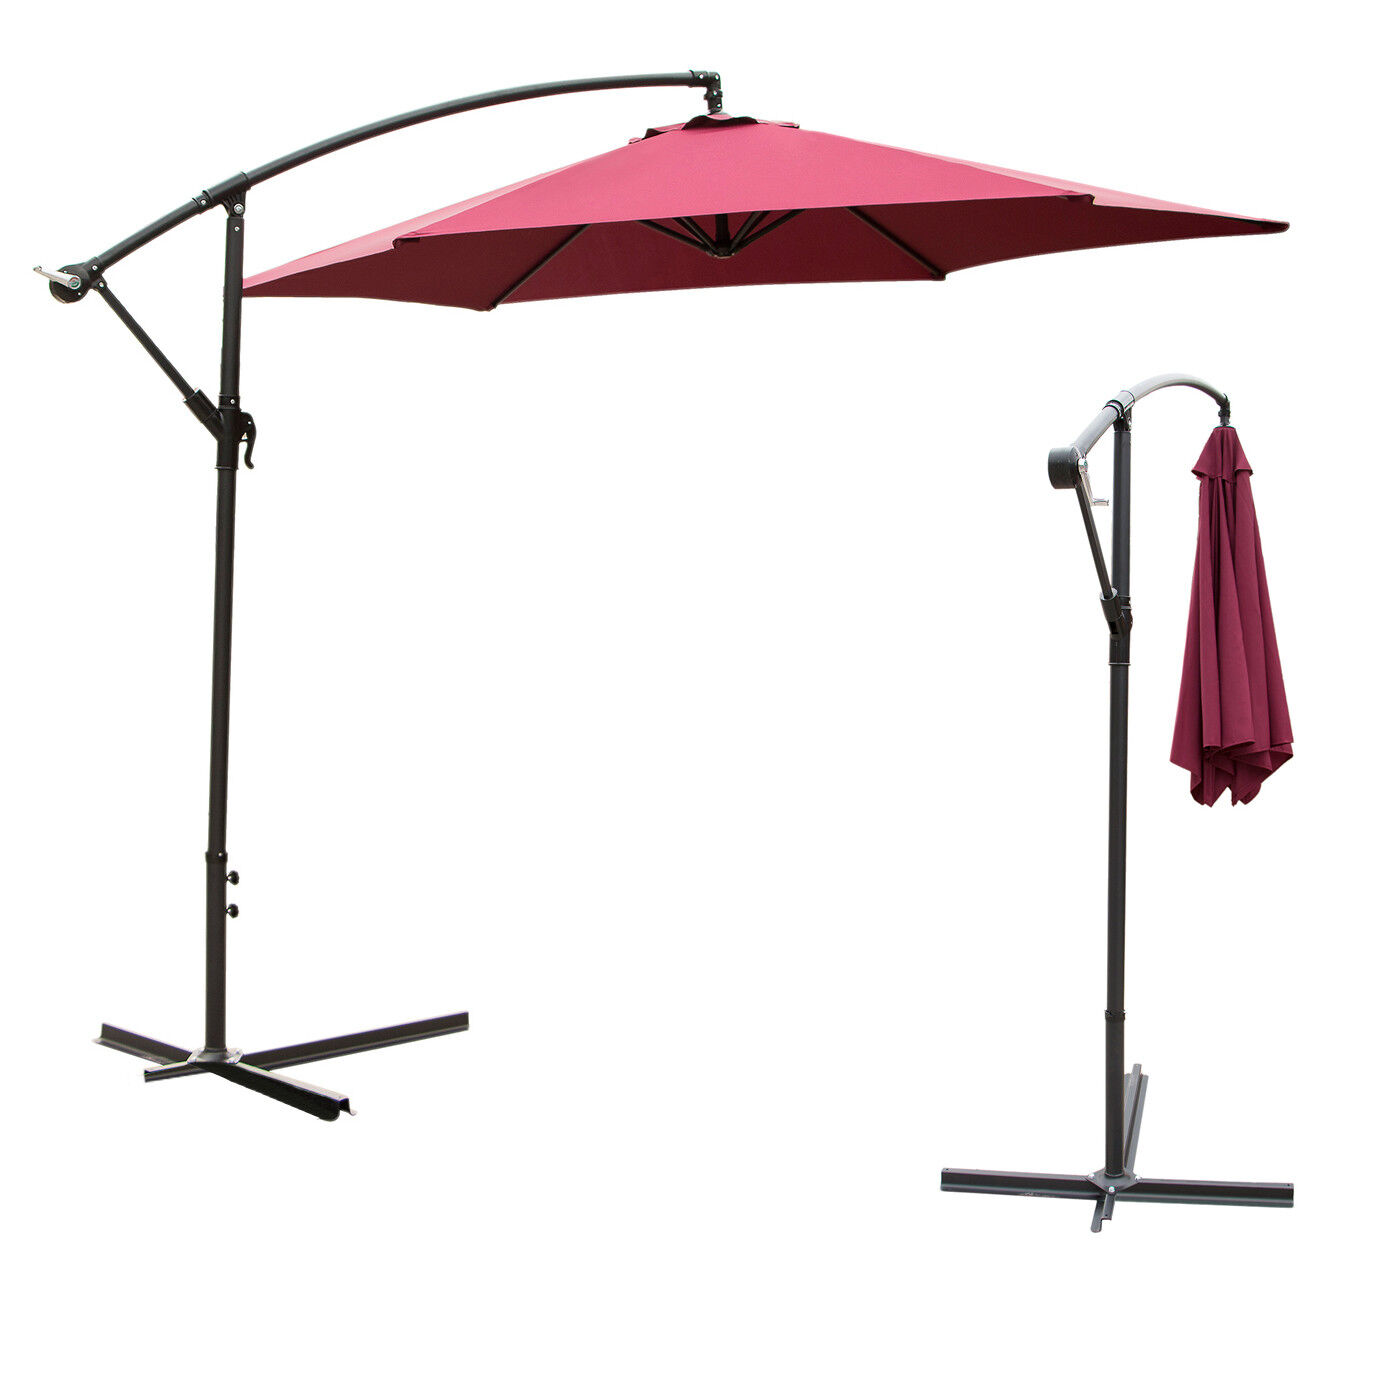 10ft outdoor hanging umbrella patio sun shade